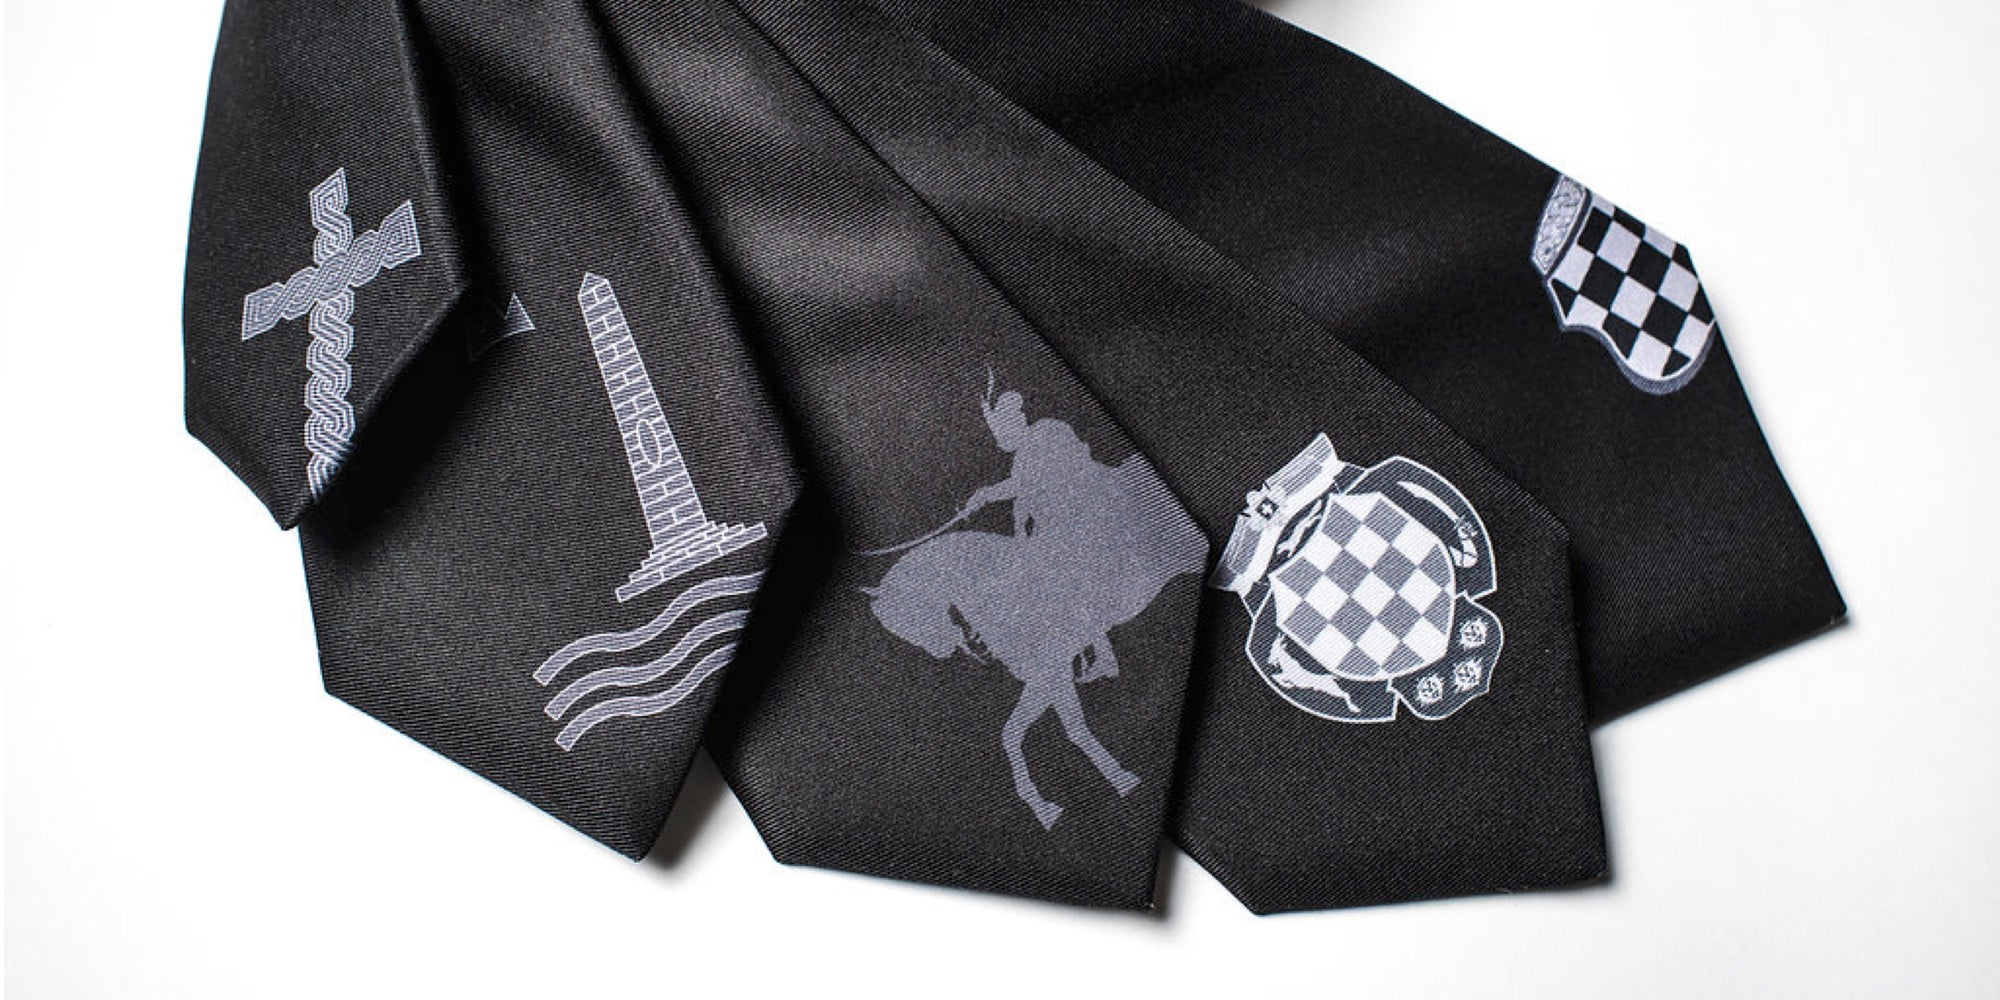 Croatian Motif Ties